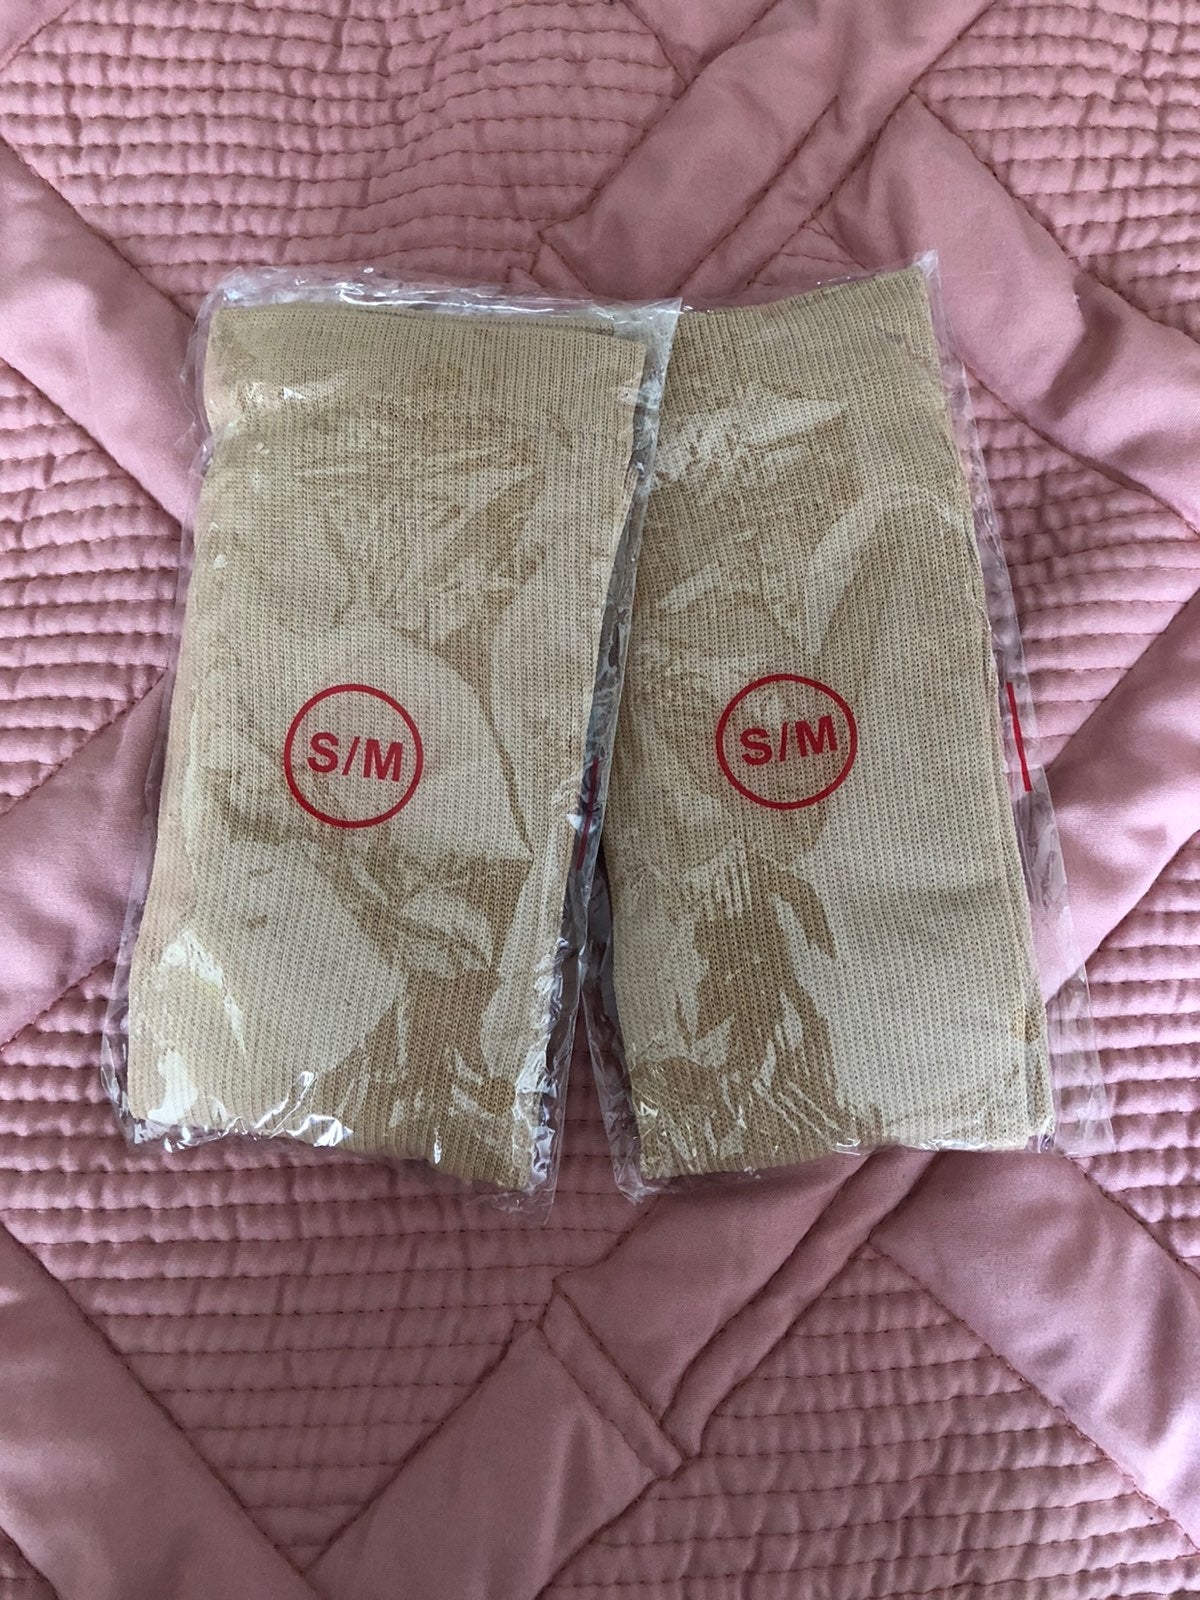 2 Pairs of Compression Socks